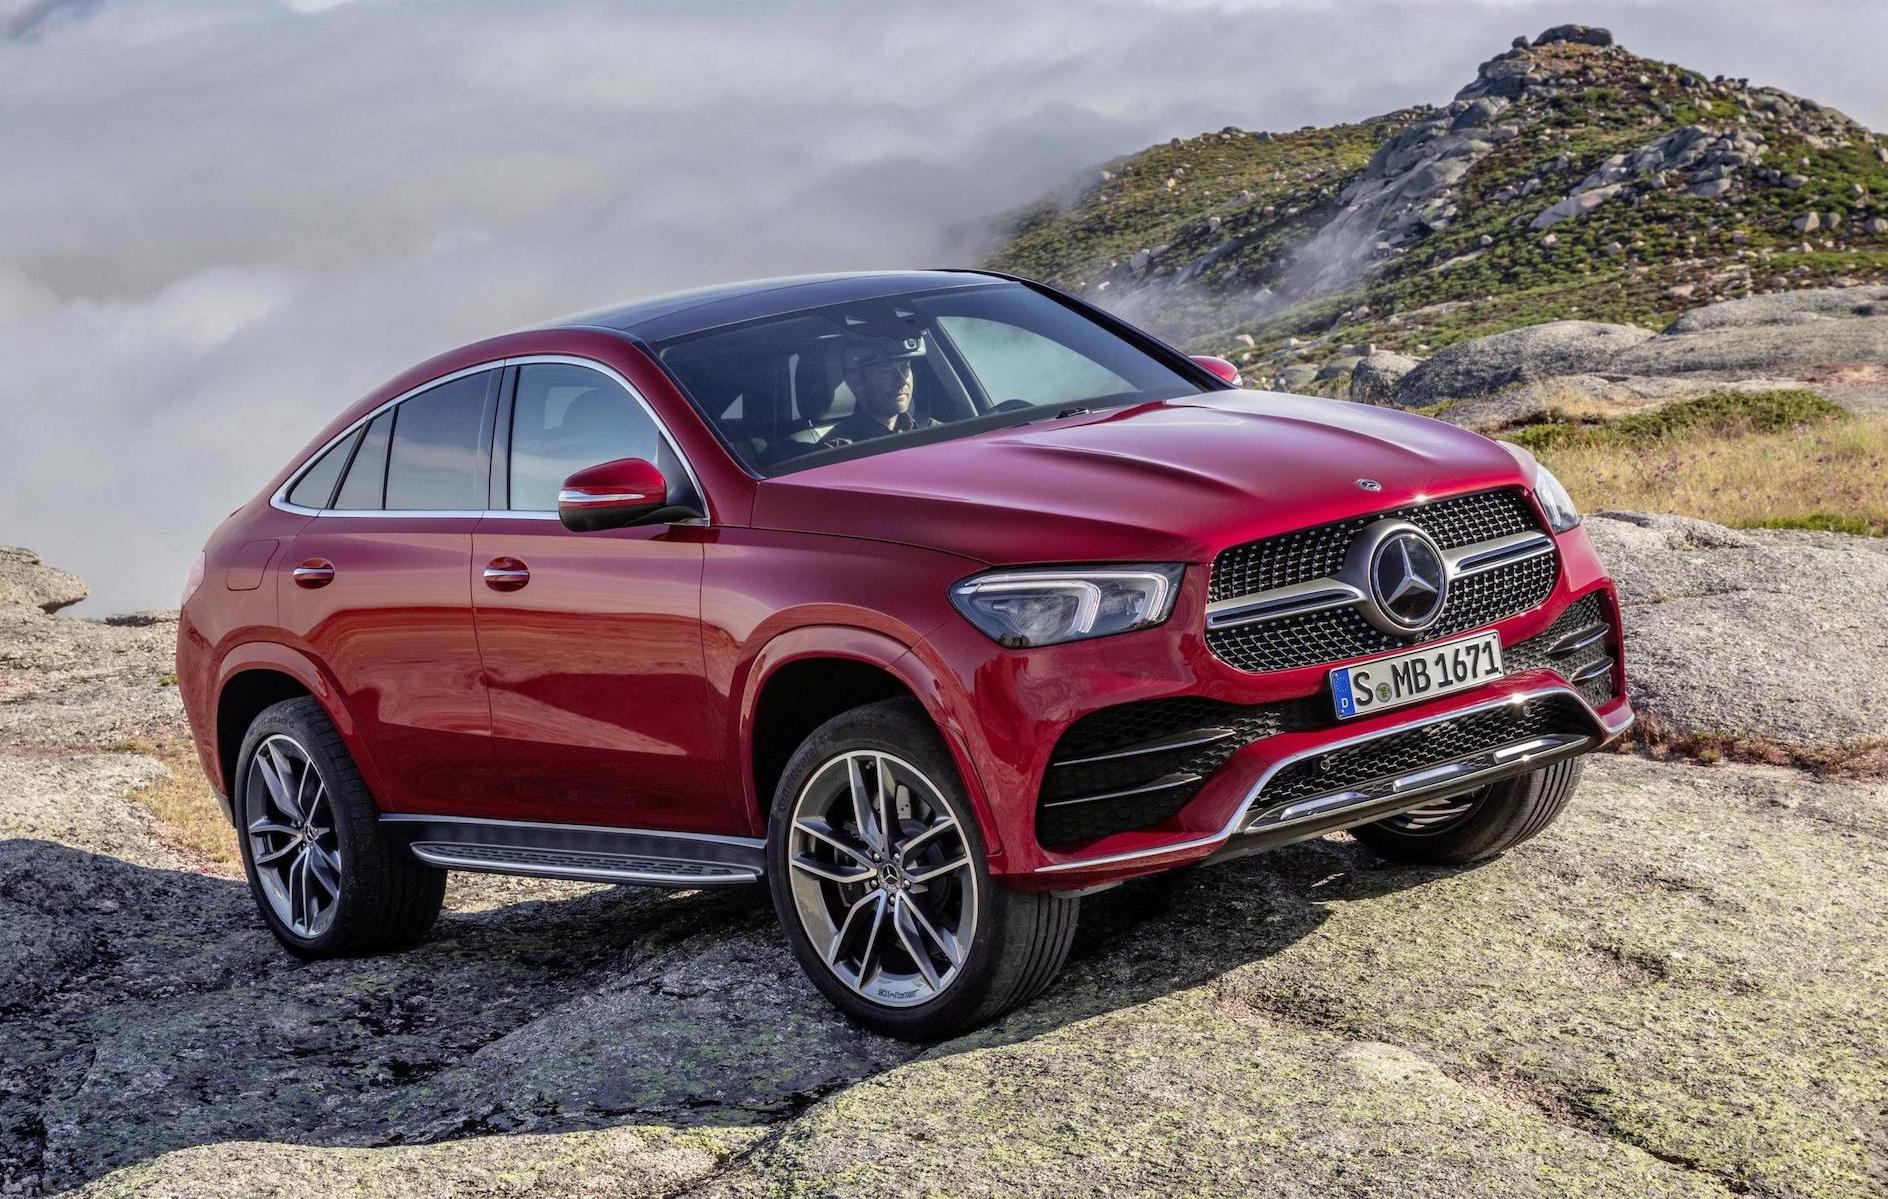 2020 Mercedes-Benz GLE Coupe unveiled, with AMG 53 ...